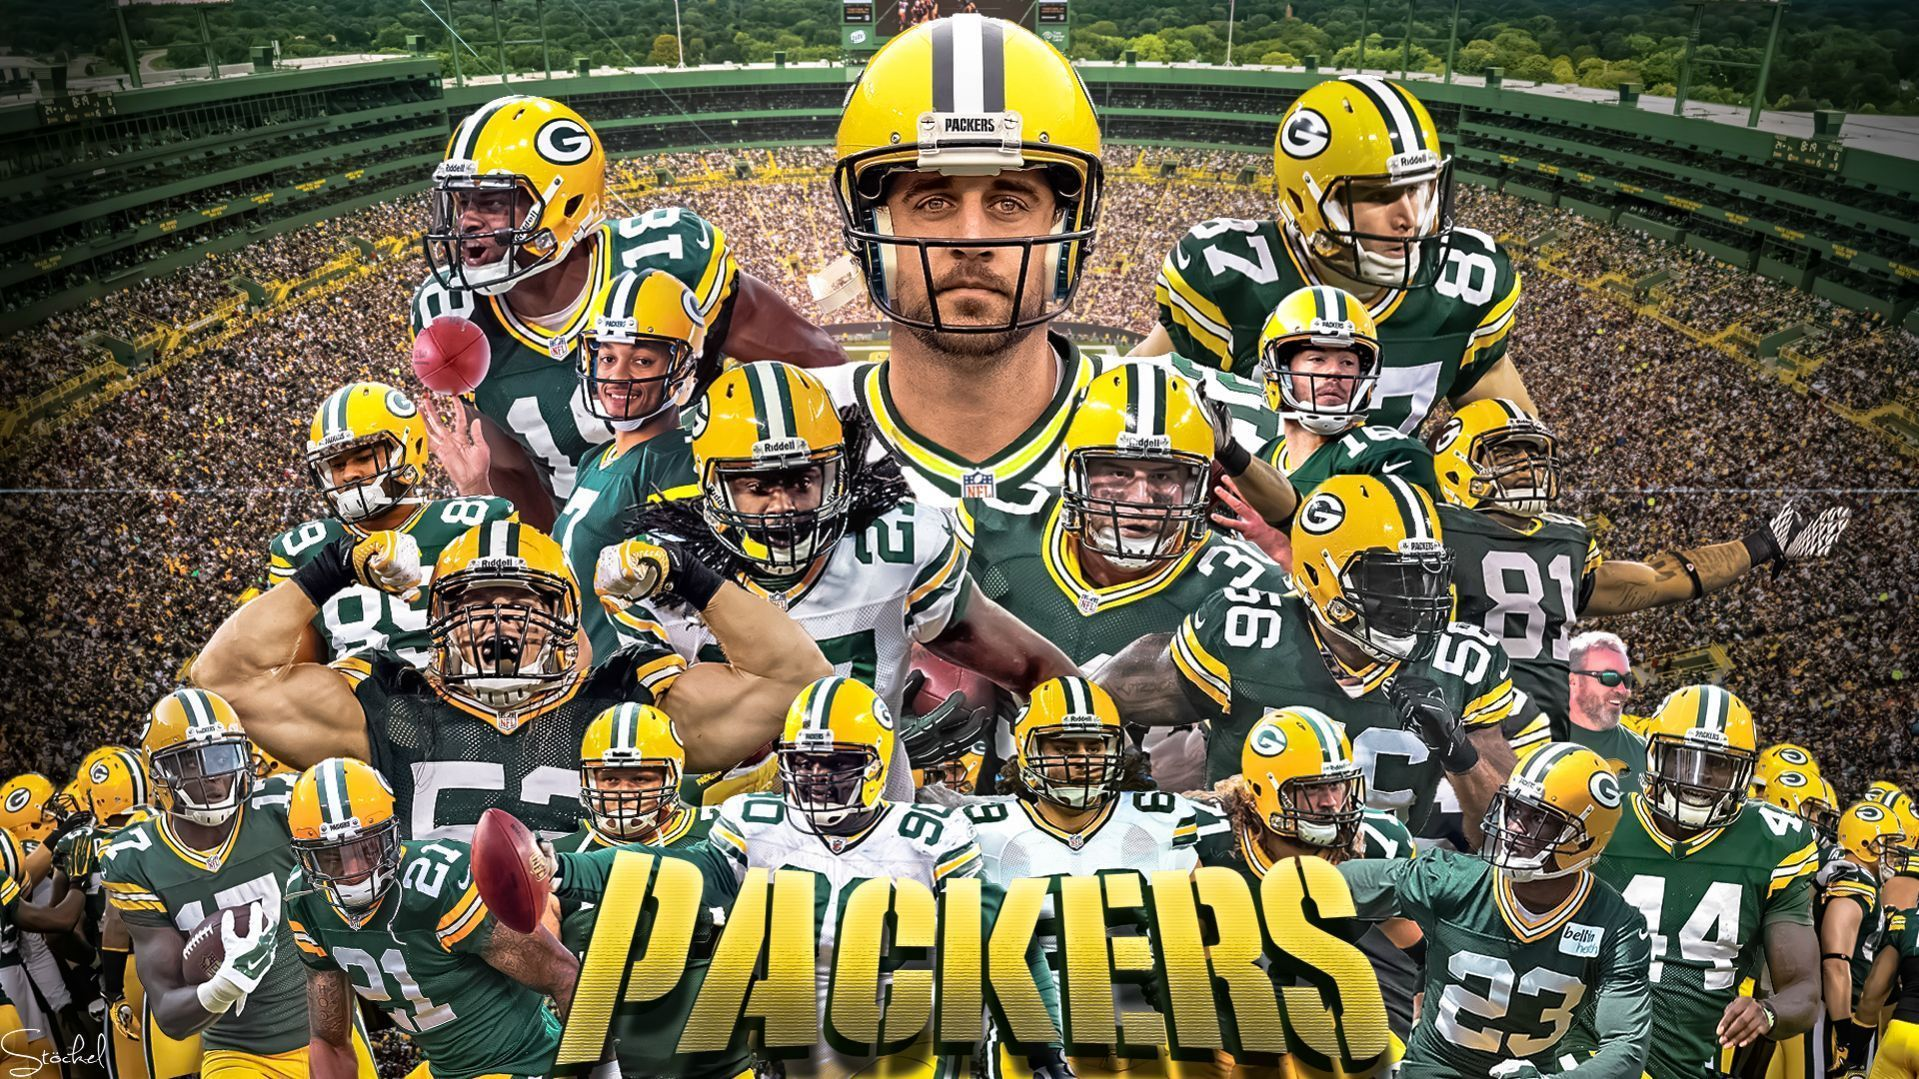 Green Bay Packers Wallpapers - Top Free